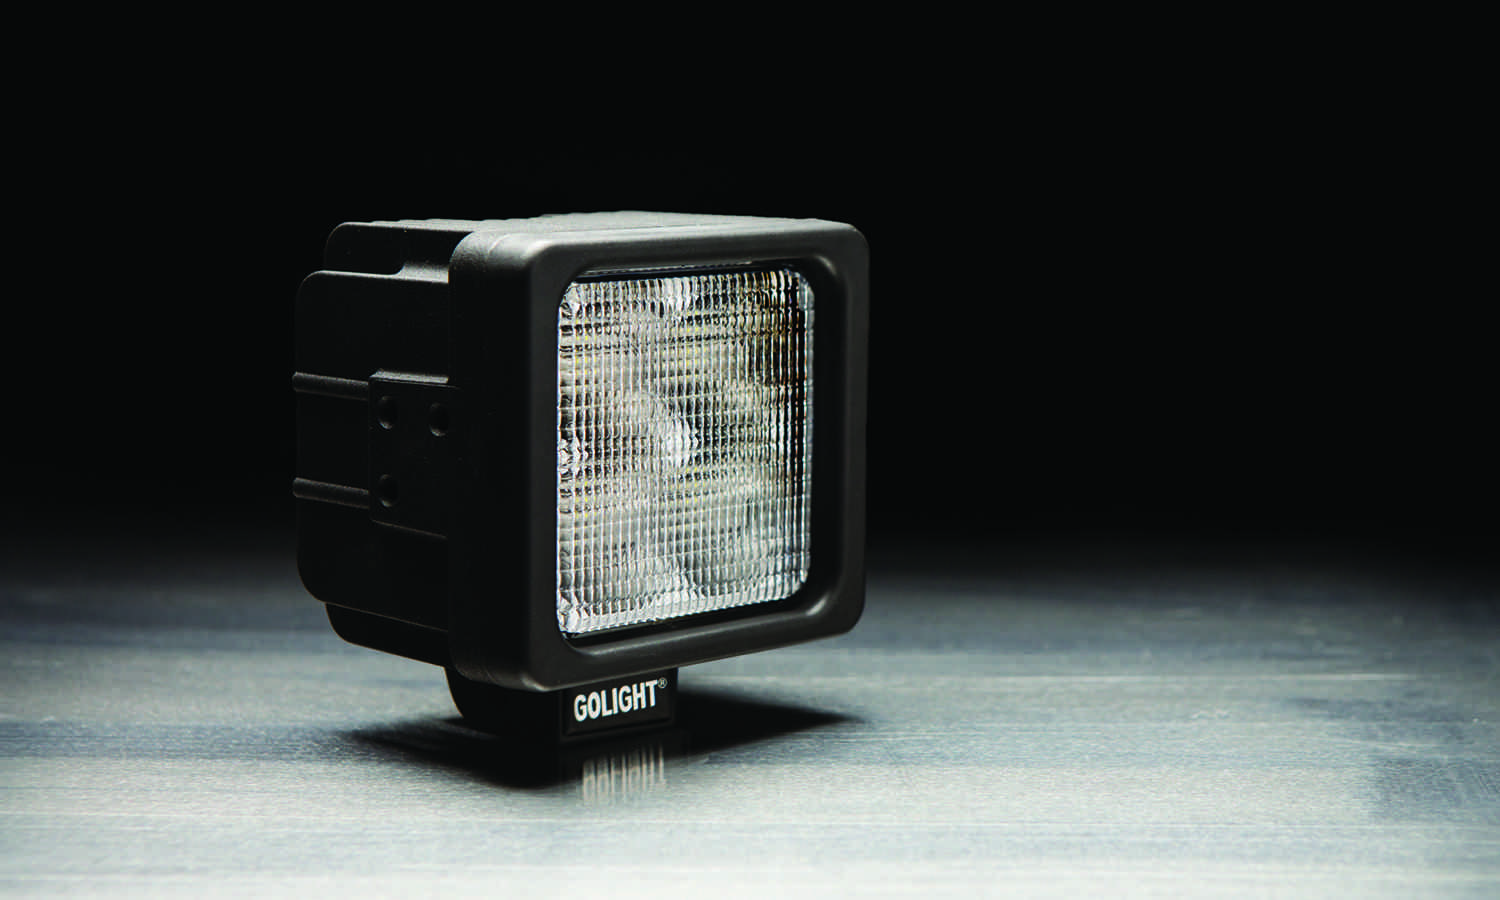 GoLight Model GXL 4021 LED Work Light